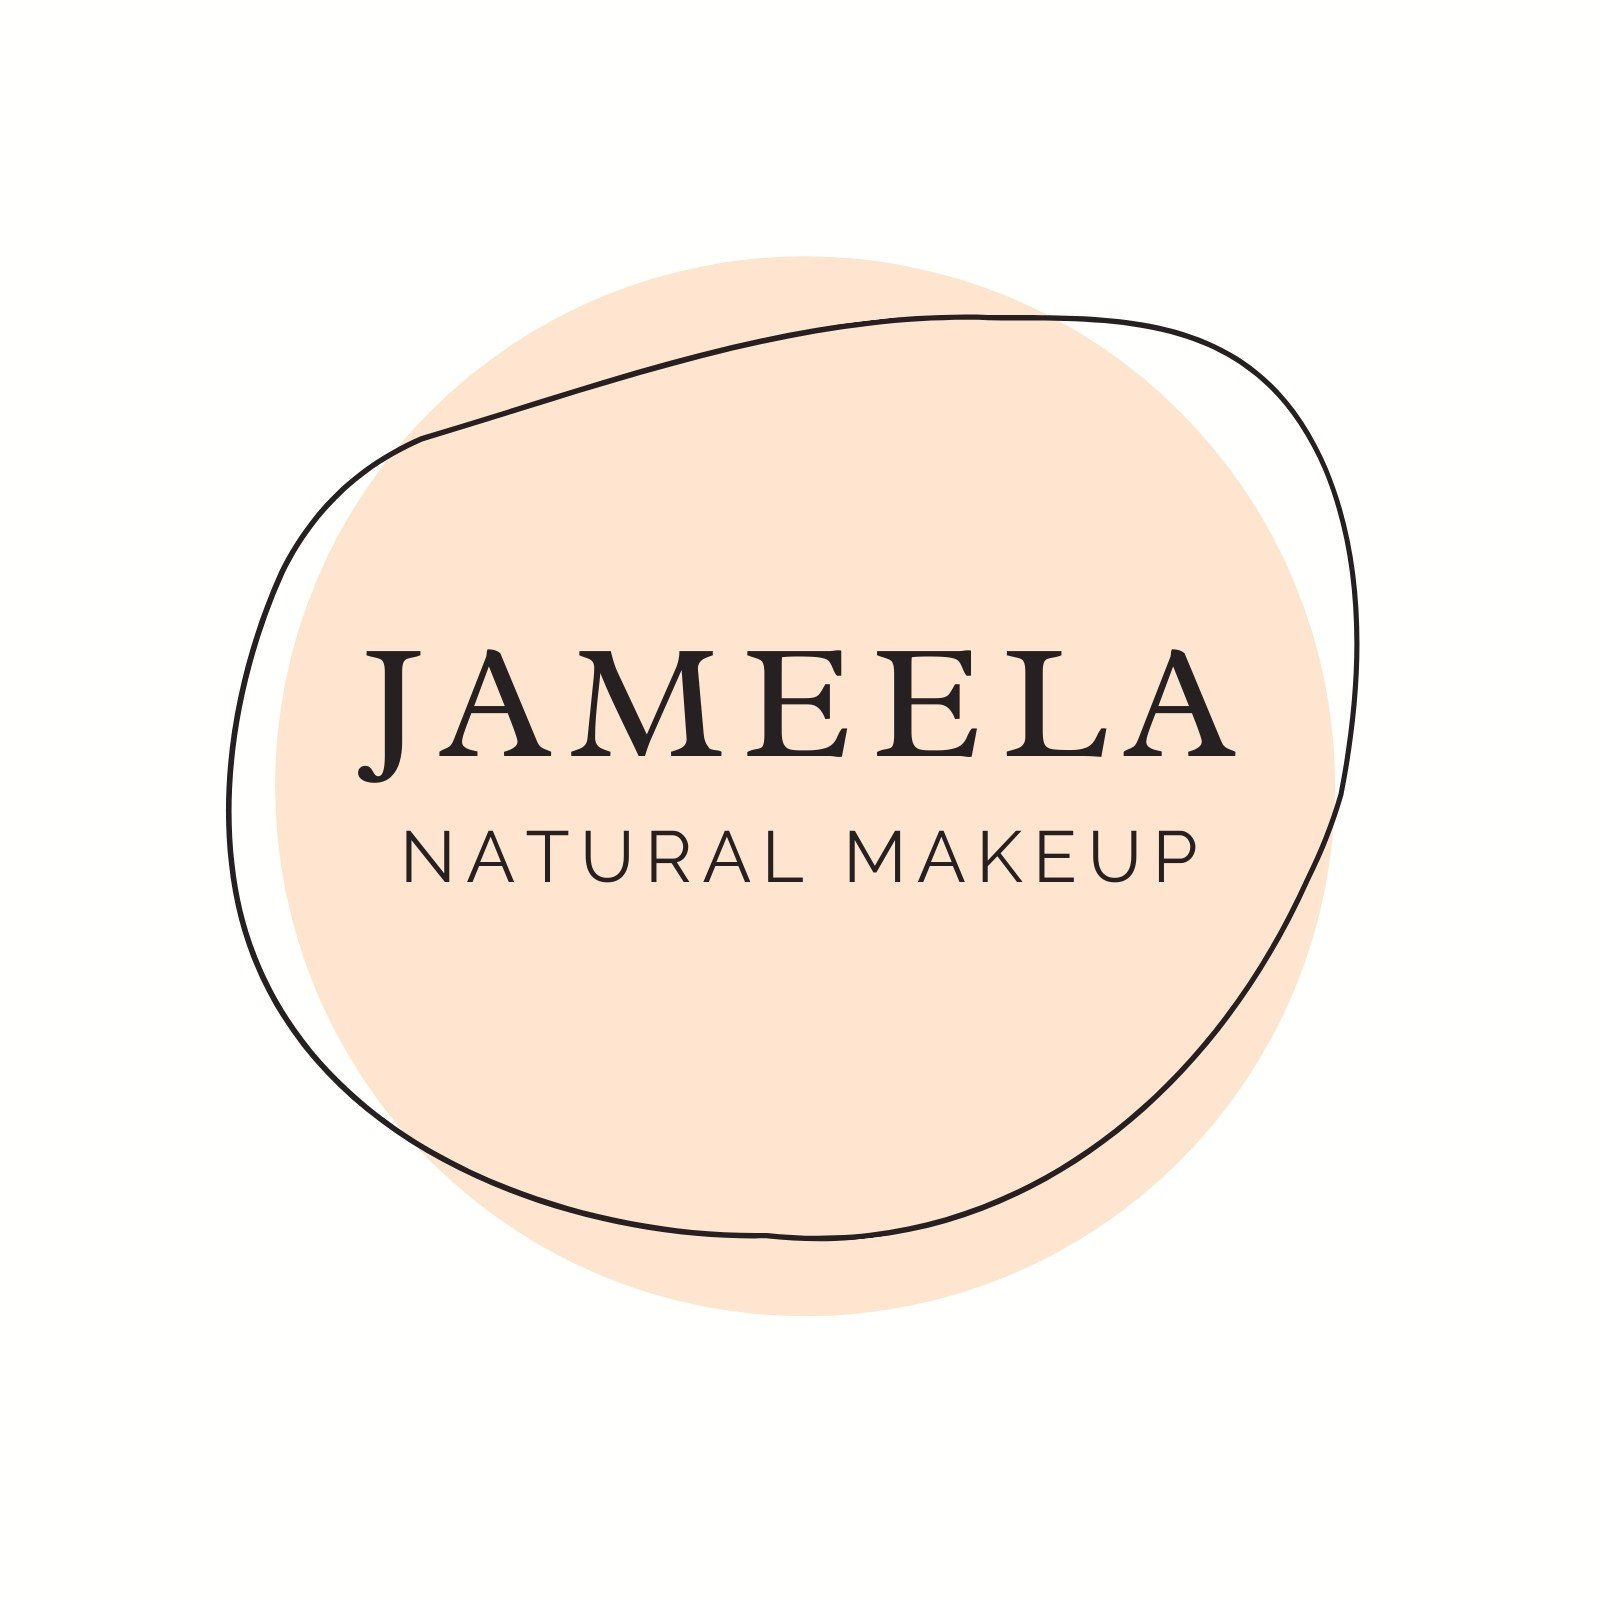 Cream and Black Natural Makeup Beauty Logo